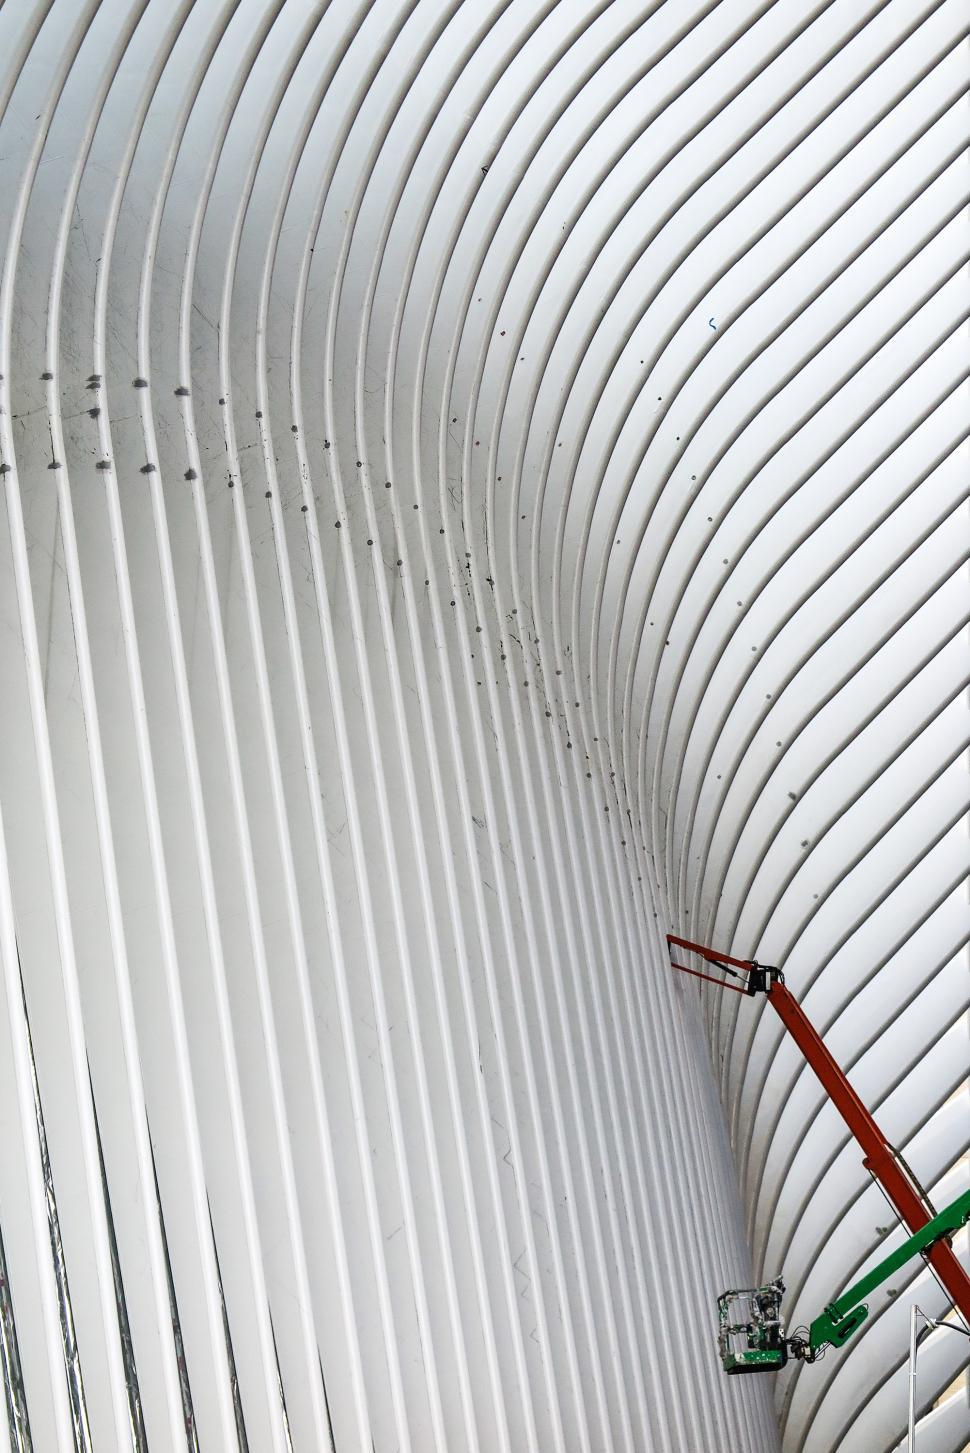 Download Free Stock HD Photo of Construction on curved facade Online